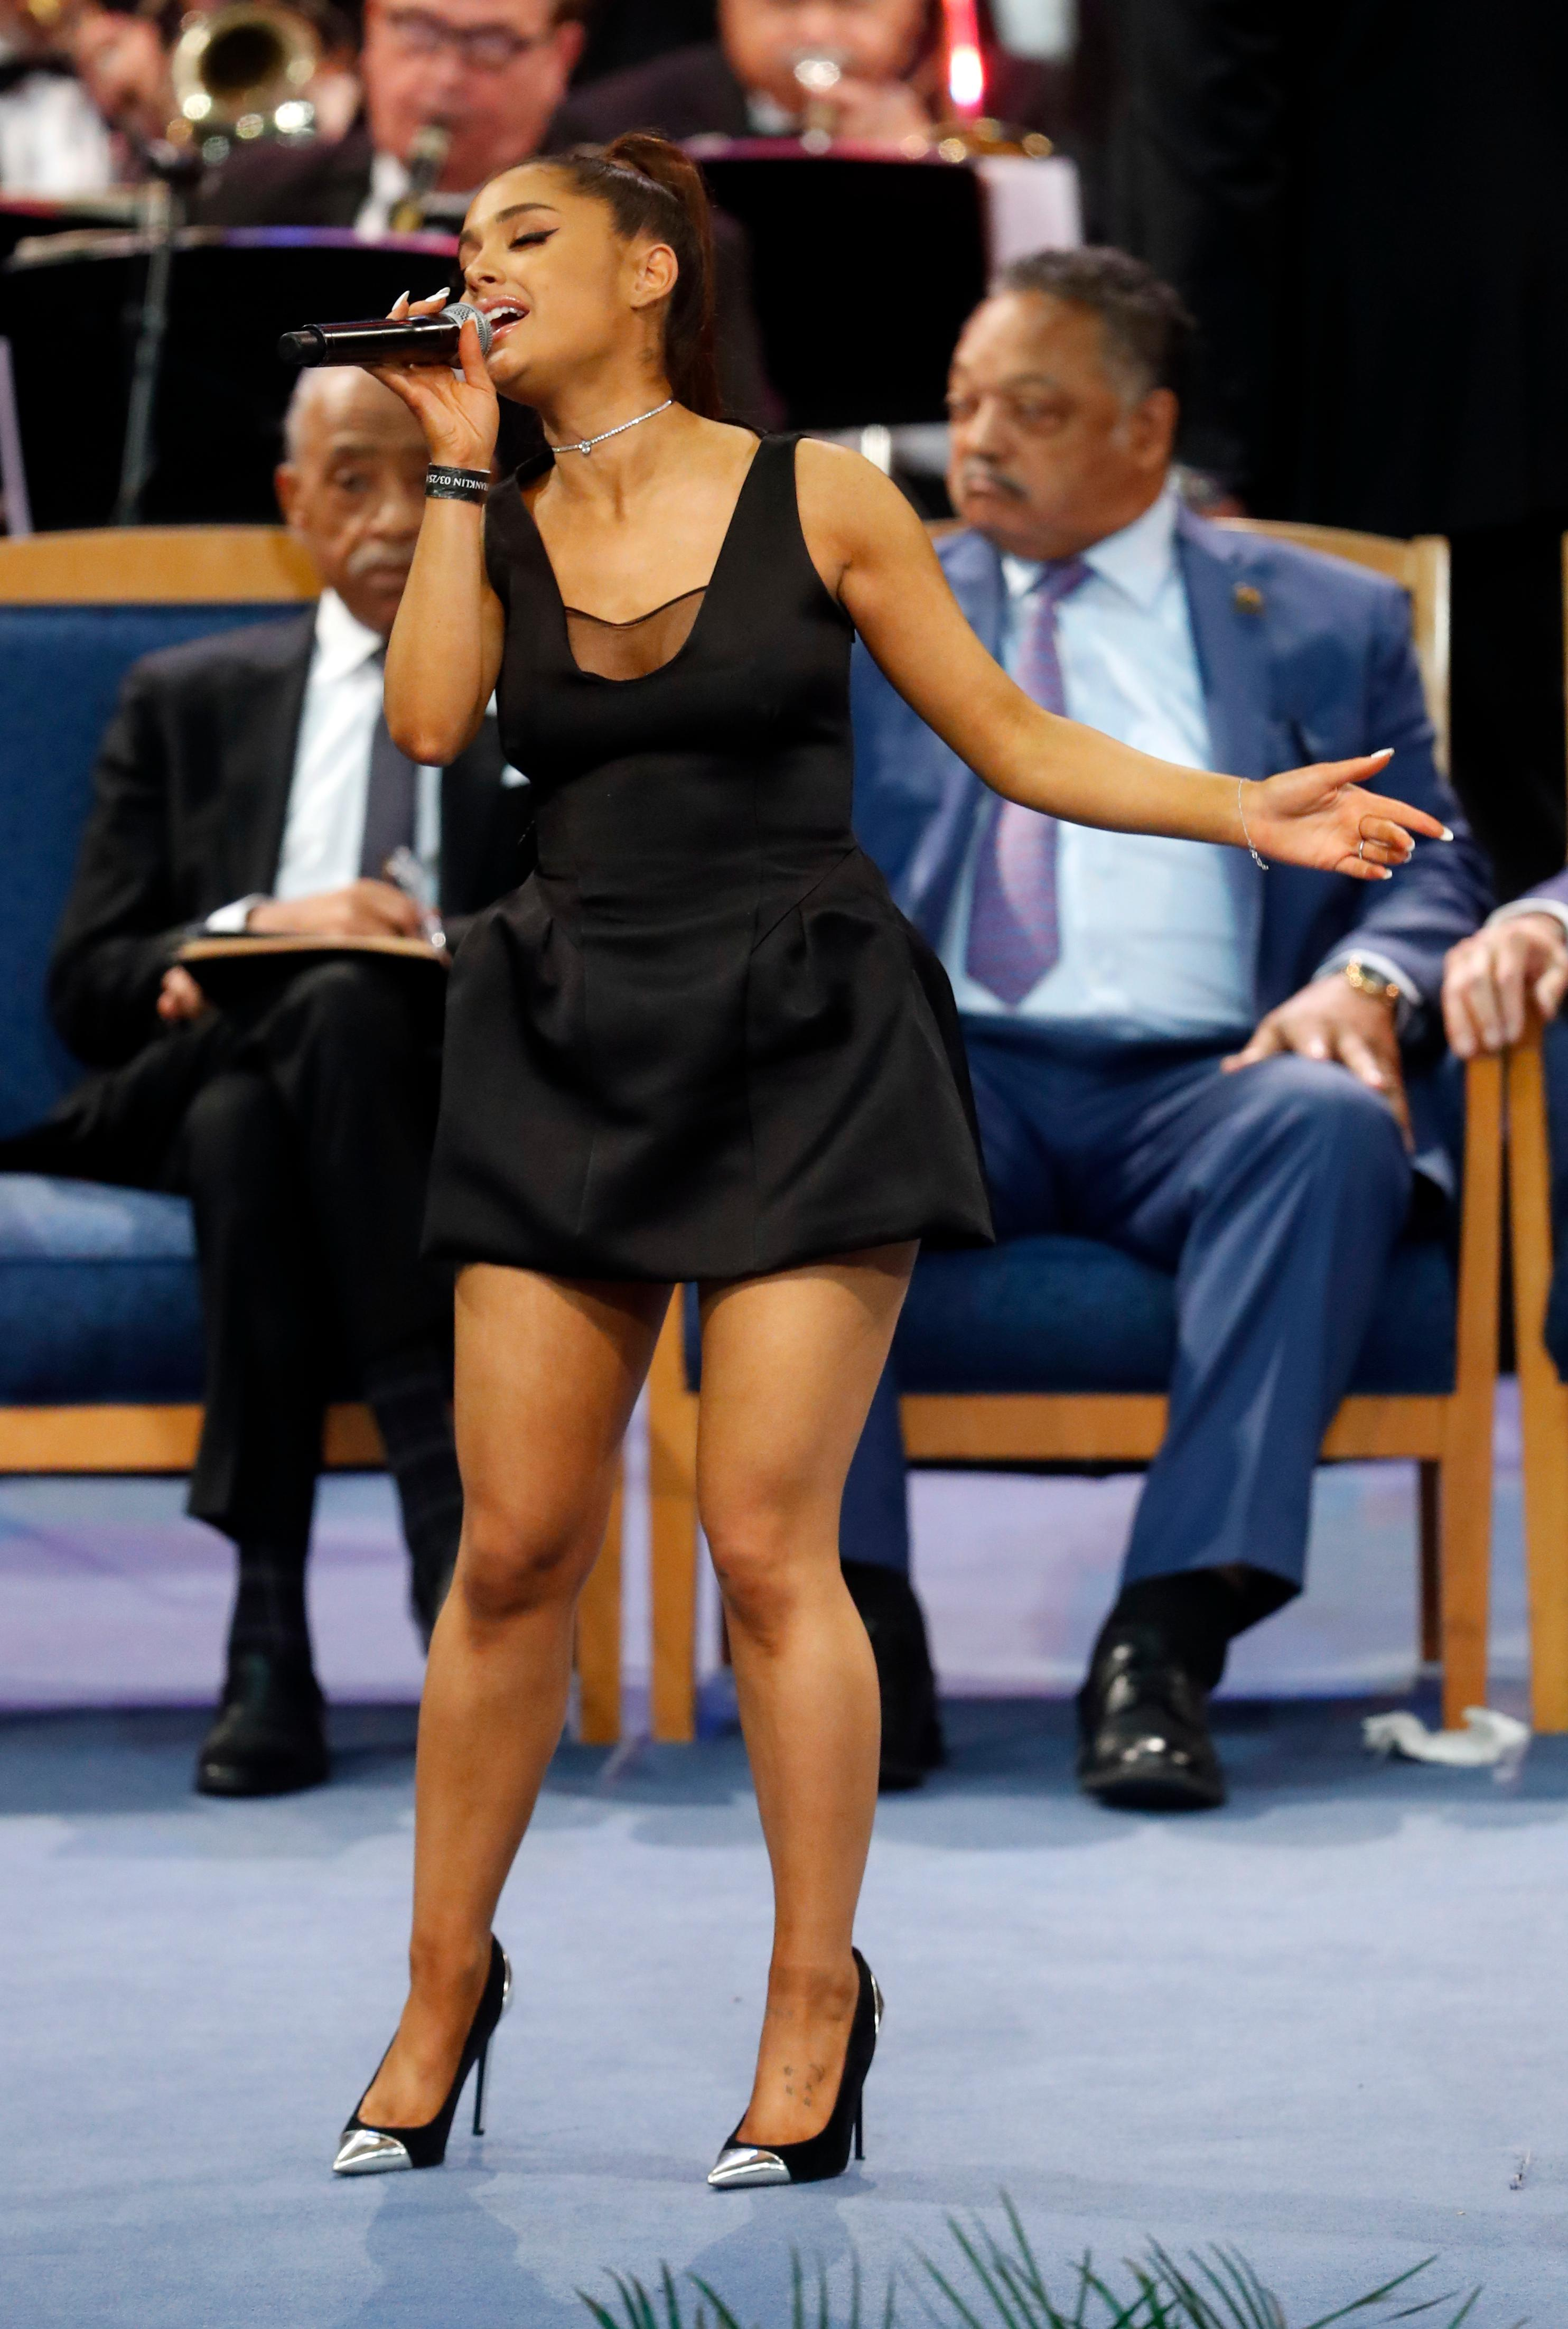 Ariana Grande performs during the funeral service for Aretha Franklin at Greater Grace Temple, Friday, Aug. 31, 2018, in Detroit. (AP Photo/Paul Sancya)